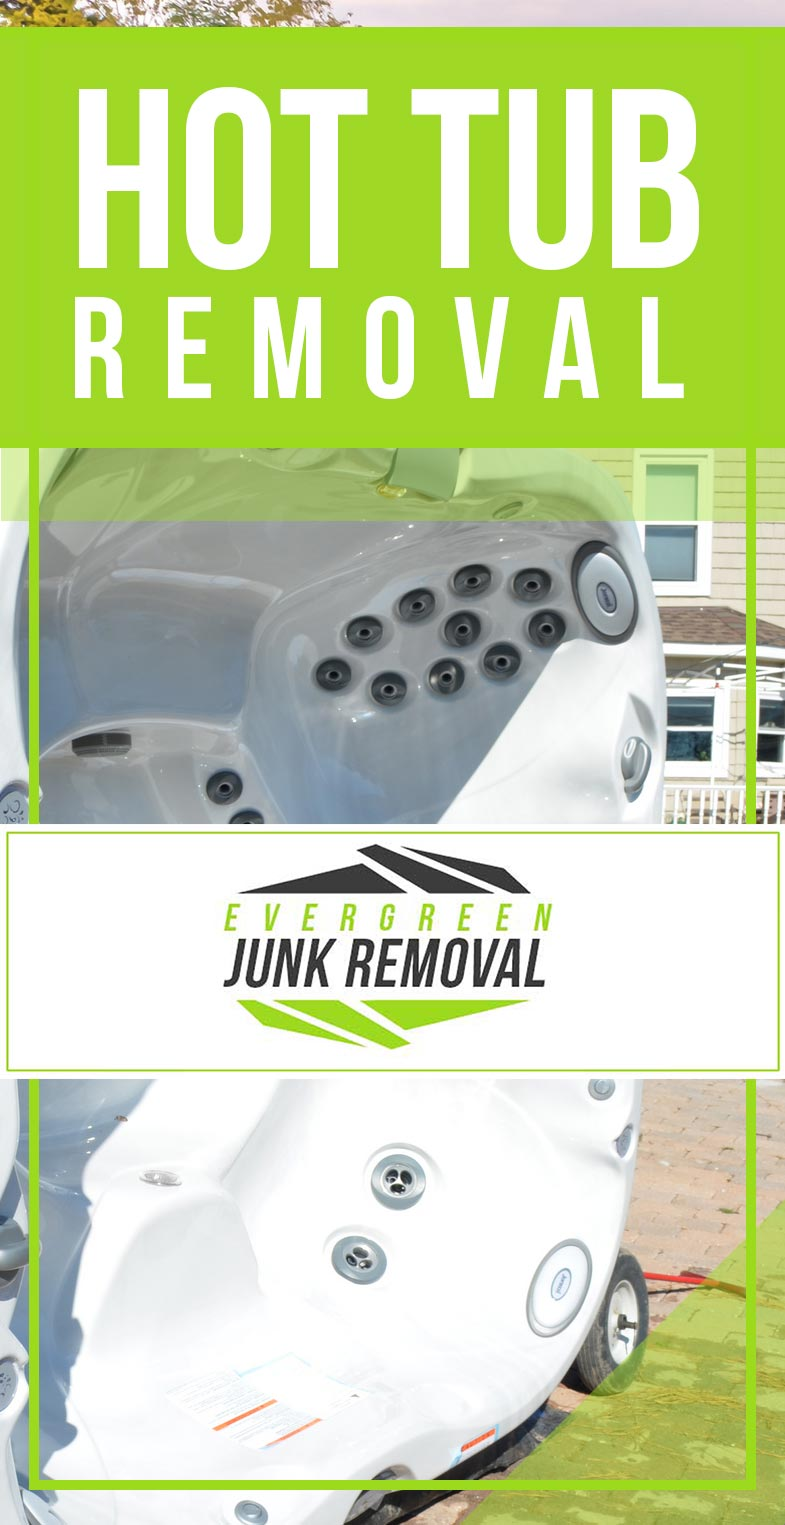 Paradise Valley Hot Tub Removal